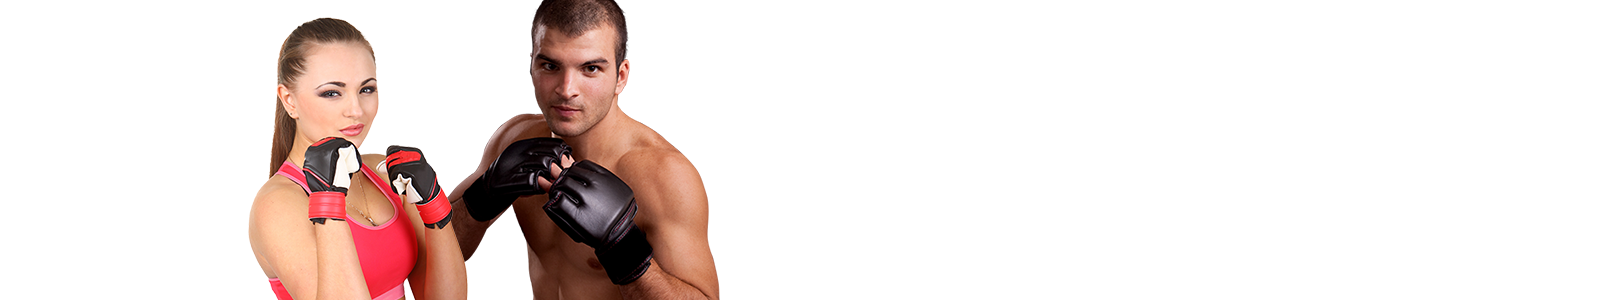 banner-after-fitness-kickboxing